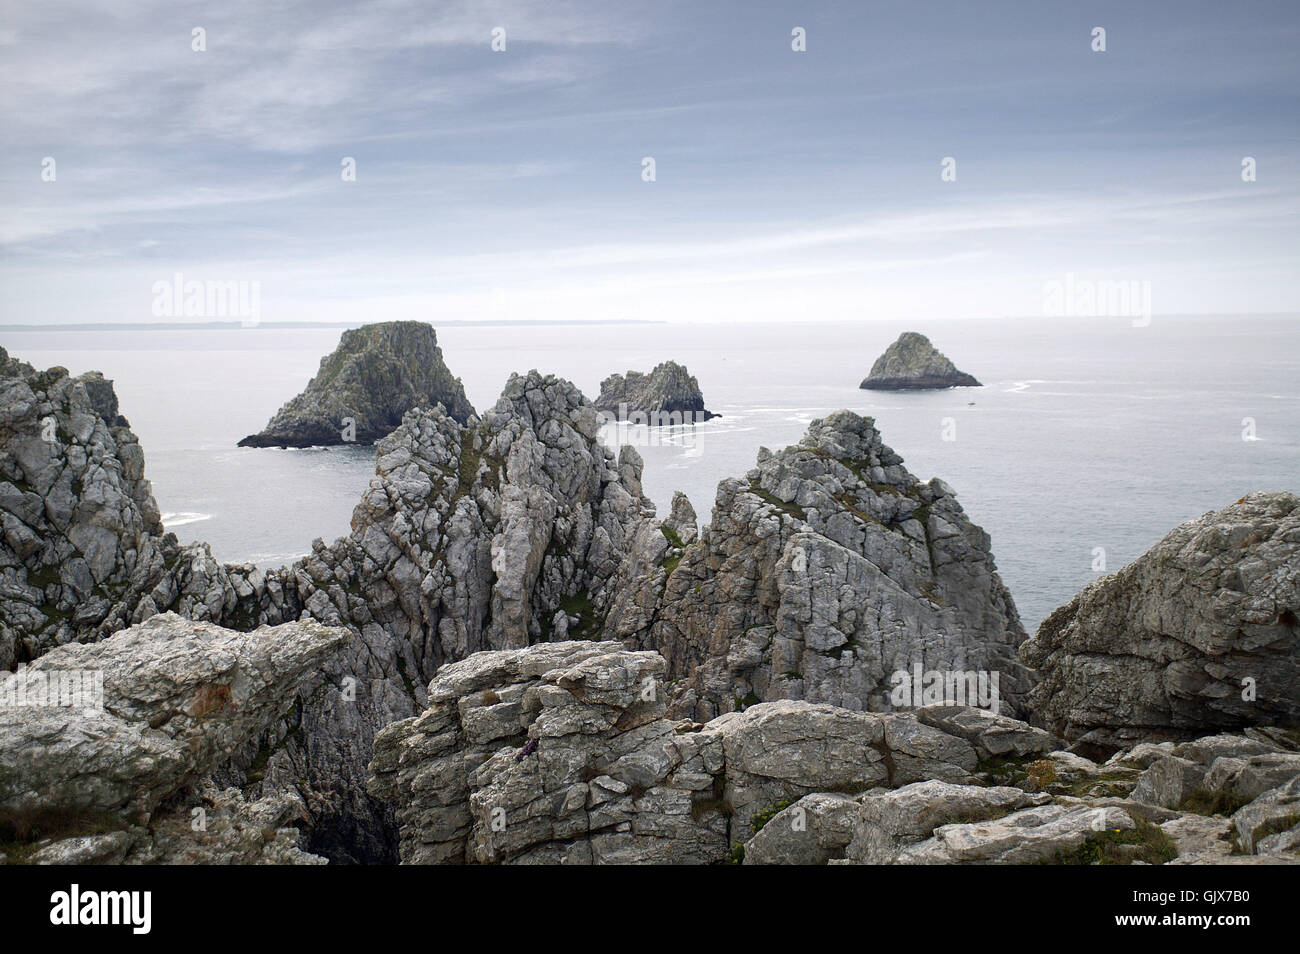 wild rock brittany - Stock Image